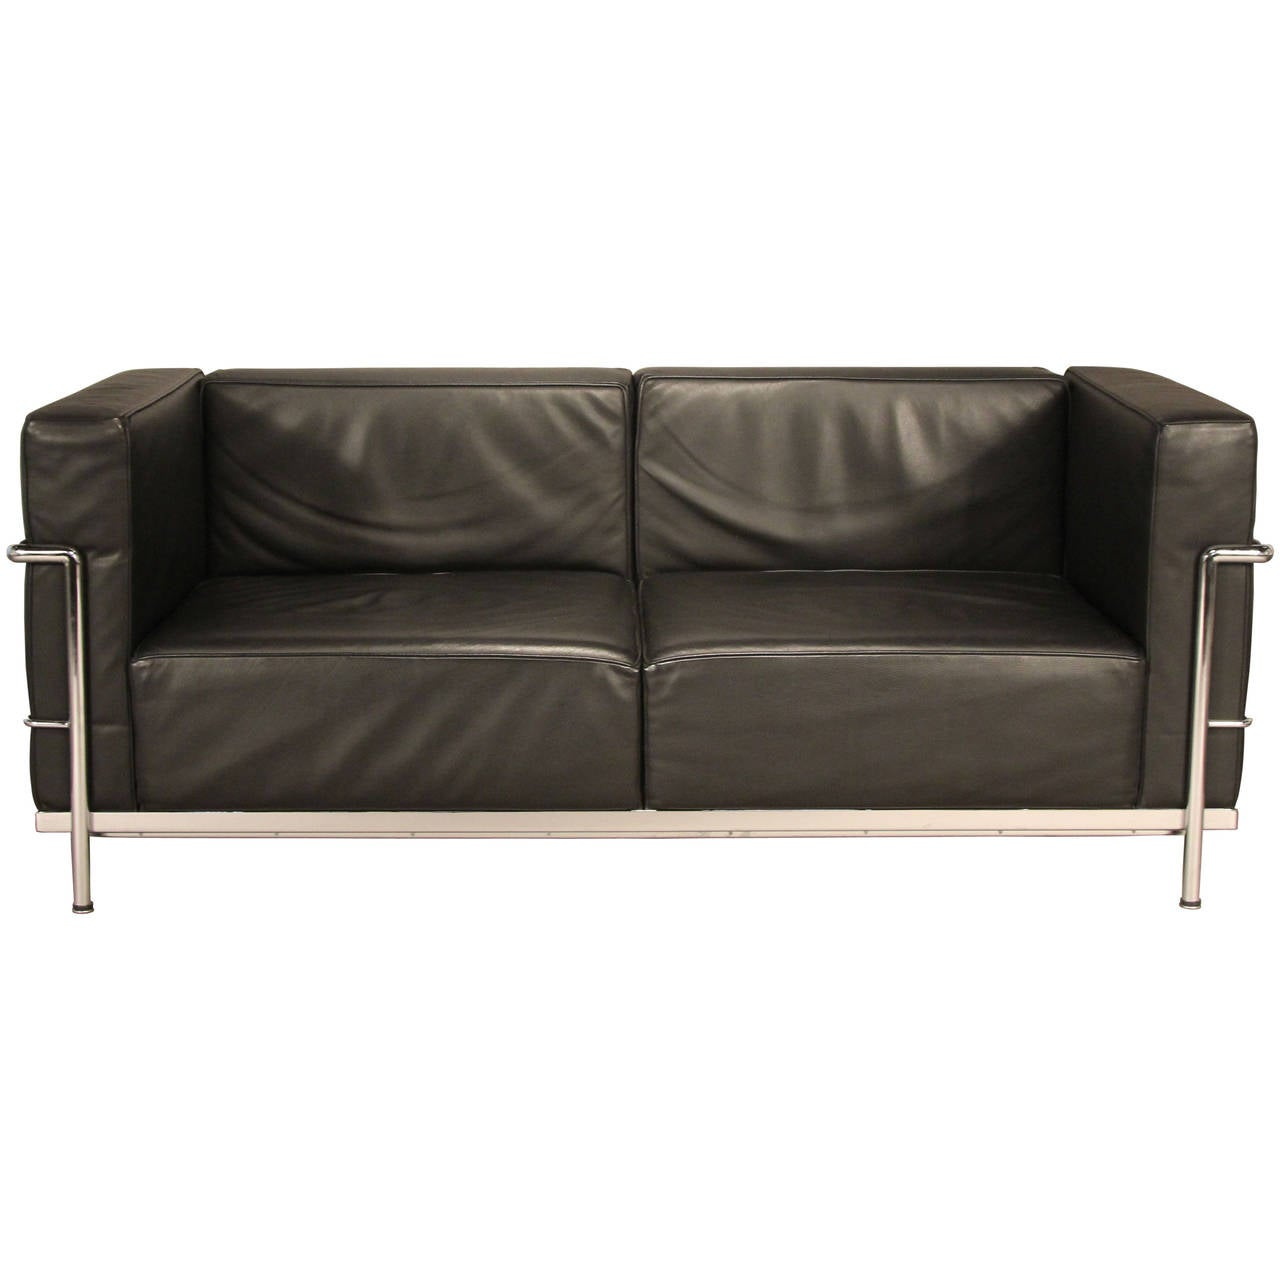 Le corbusier lc3 leather and chrome loveseat sofa at 1stdibs for Le corbusier sofa